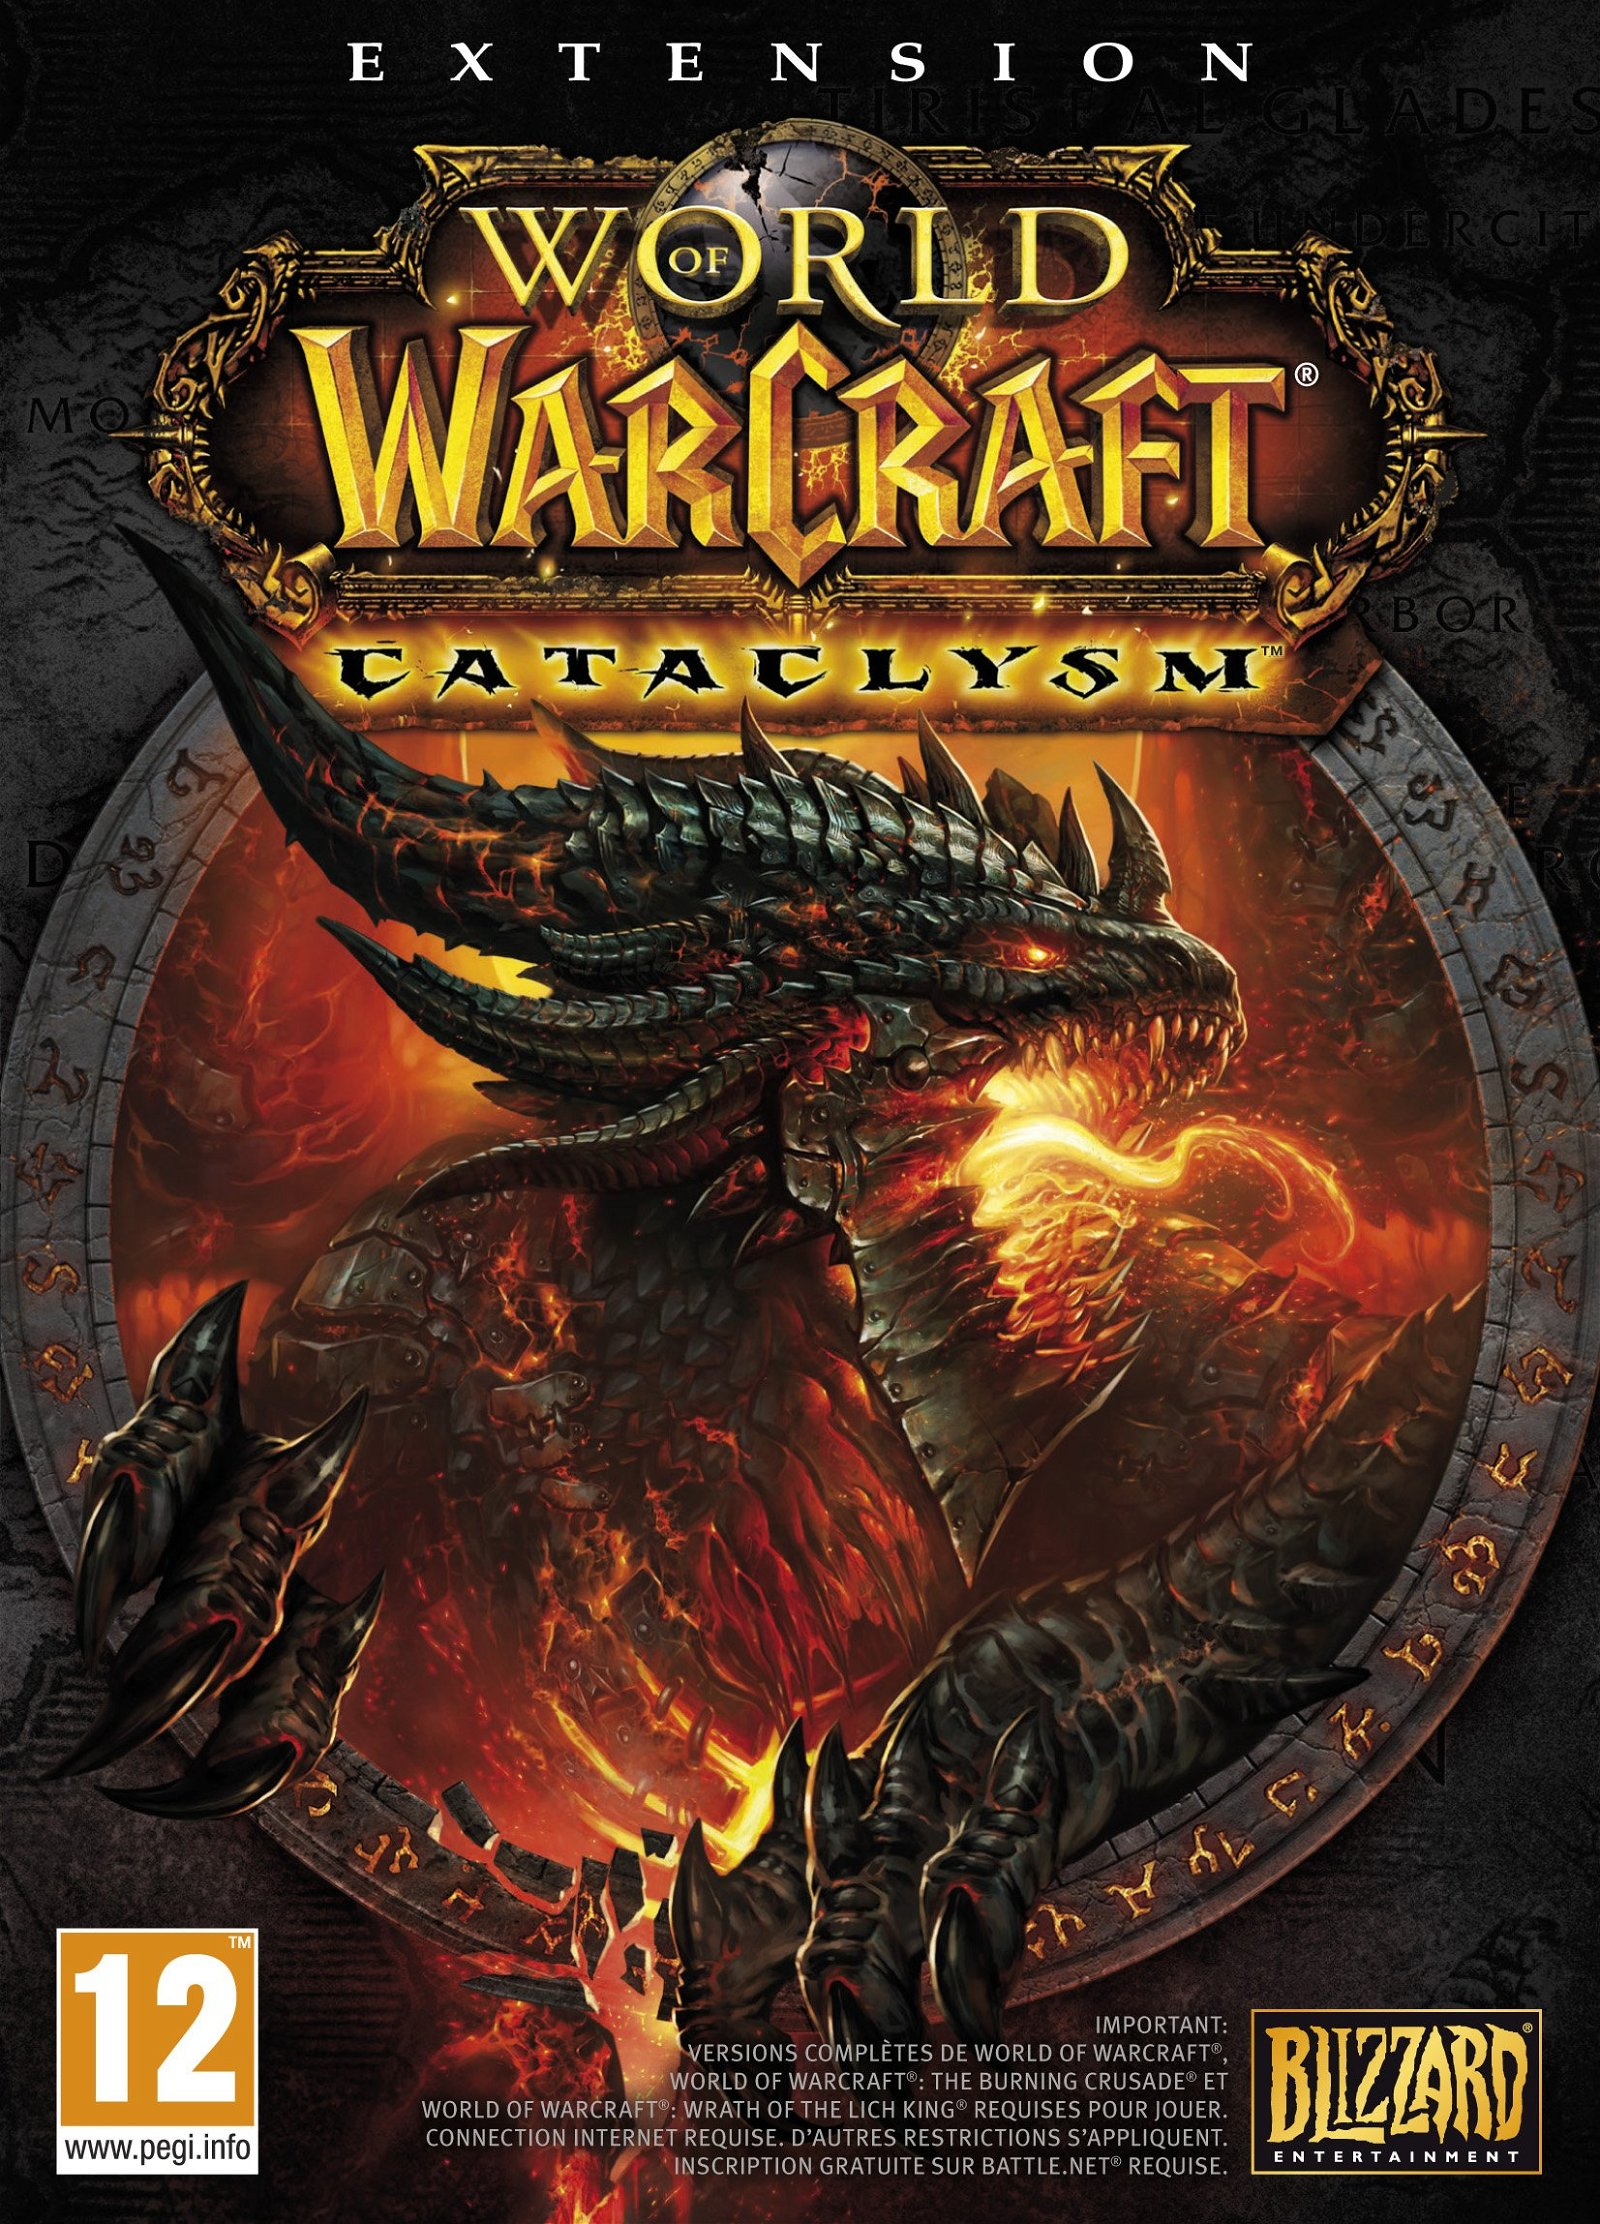 World of Warcraft: Cataclysm (PC) Review 2